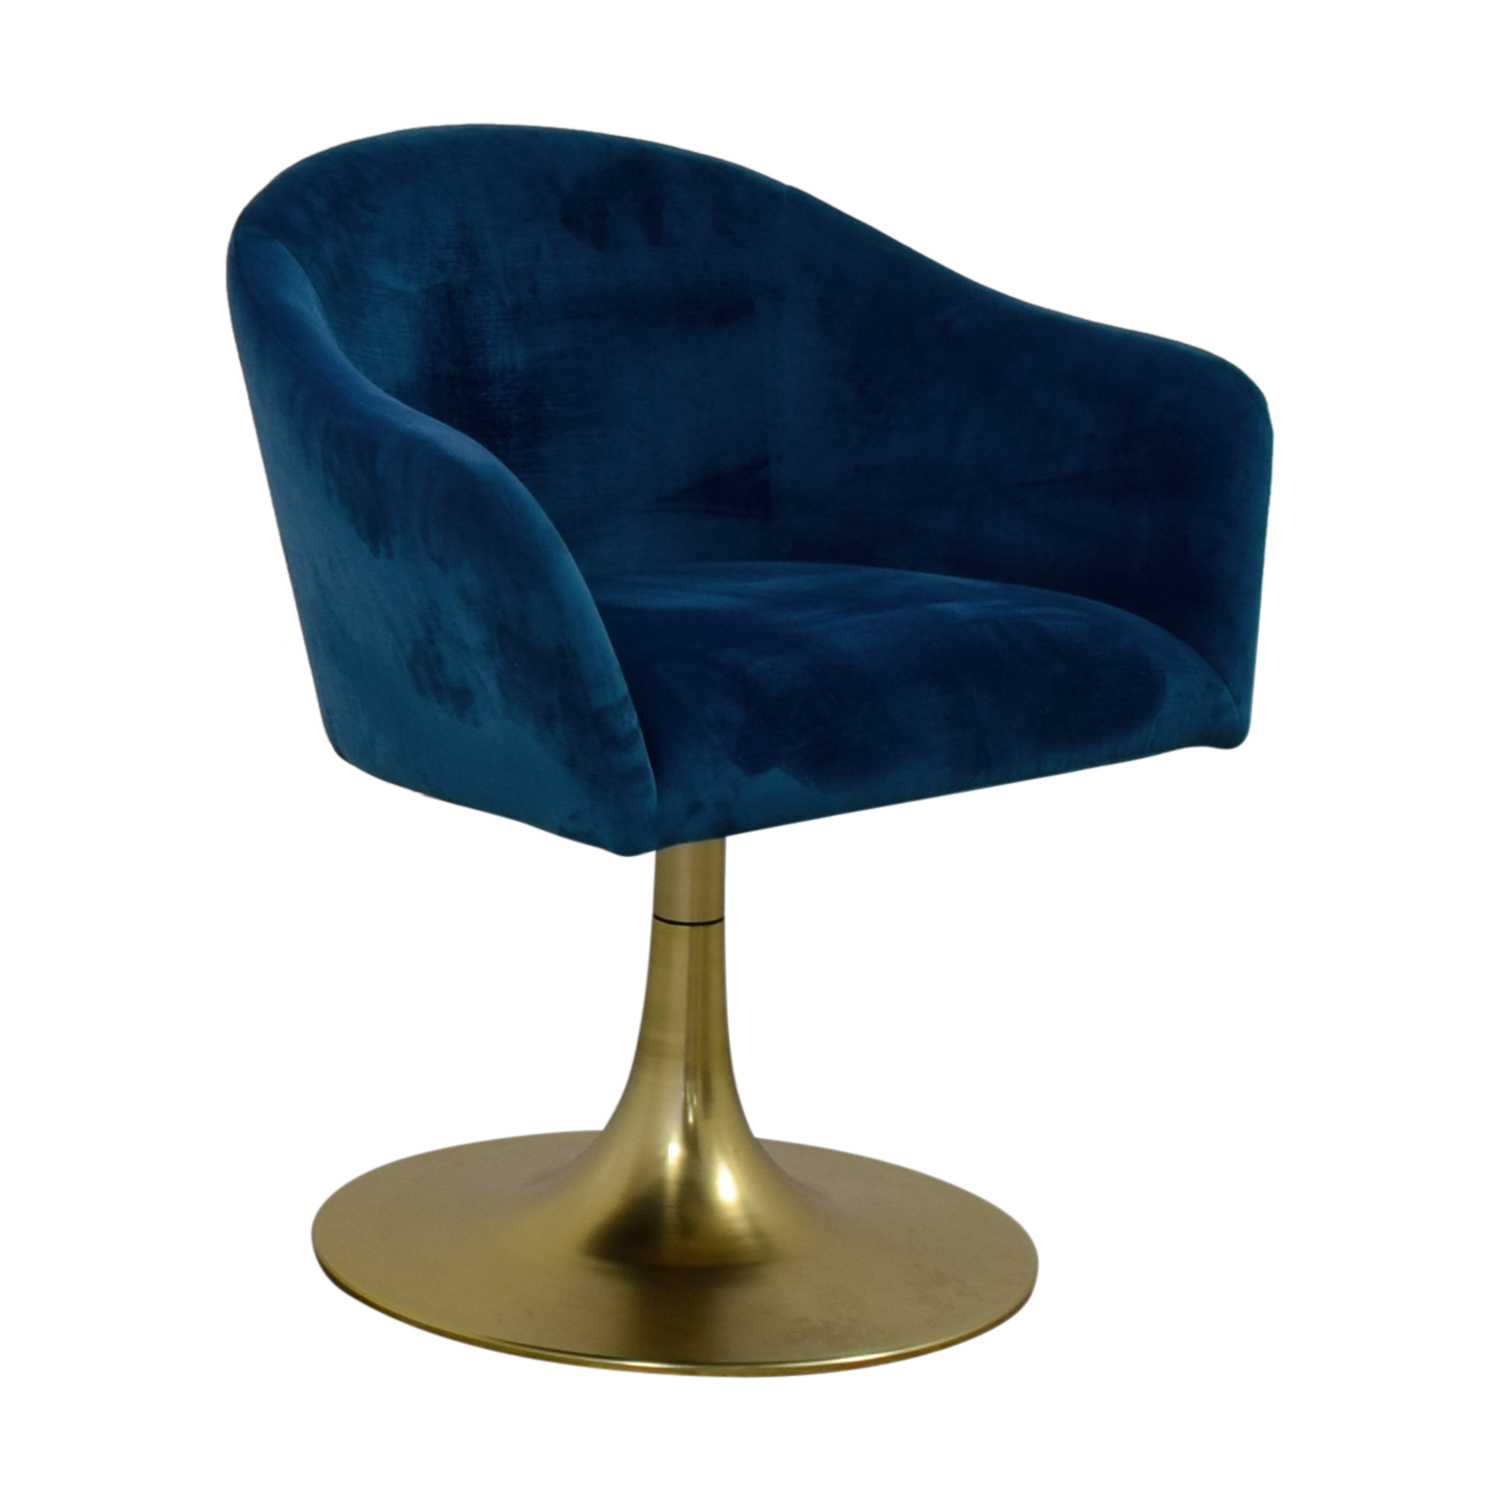 shop West Elm Bond Blue Velvet Swivel Chair West Elm Chairs